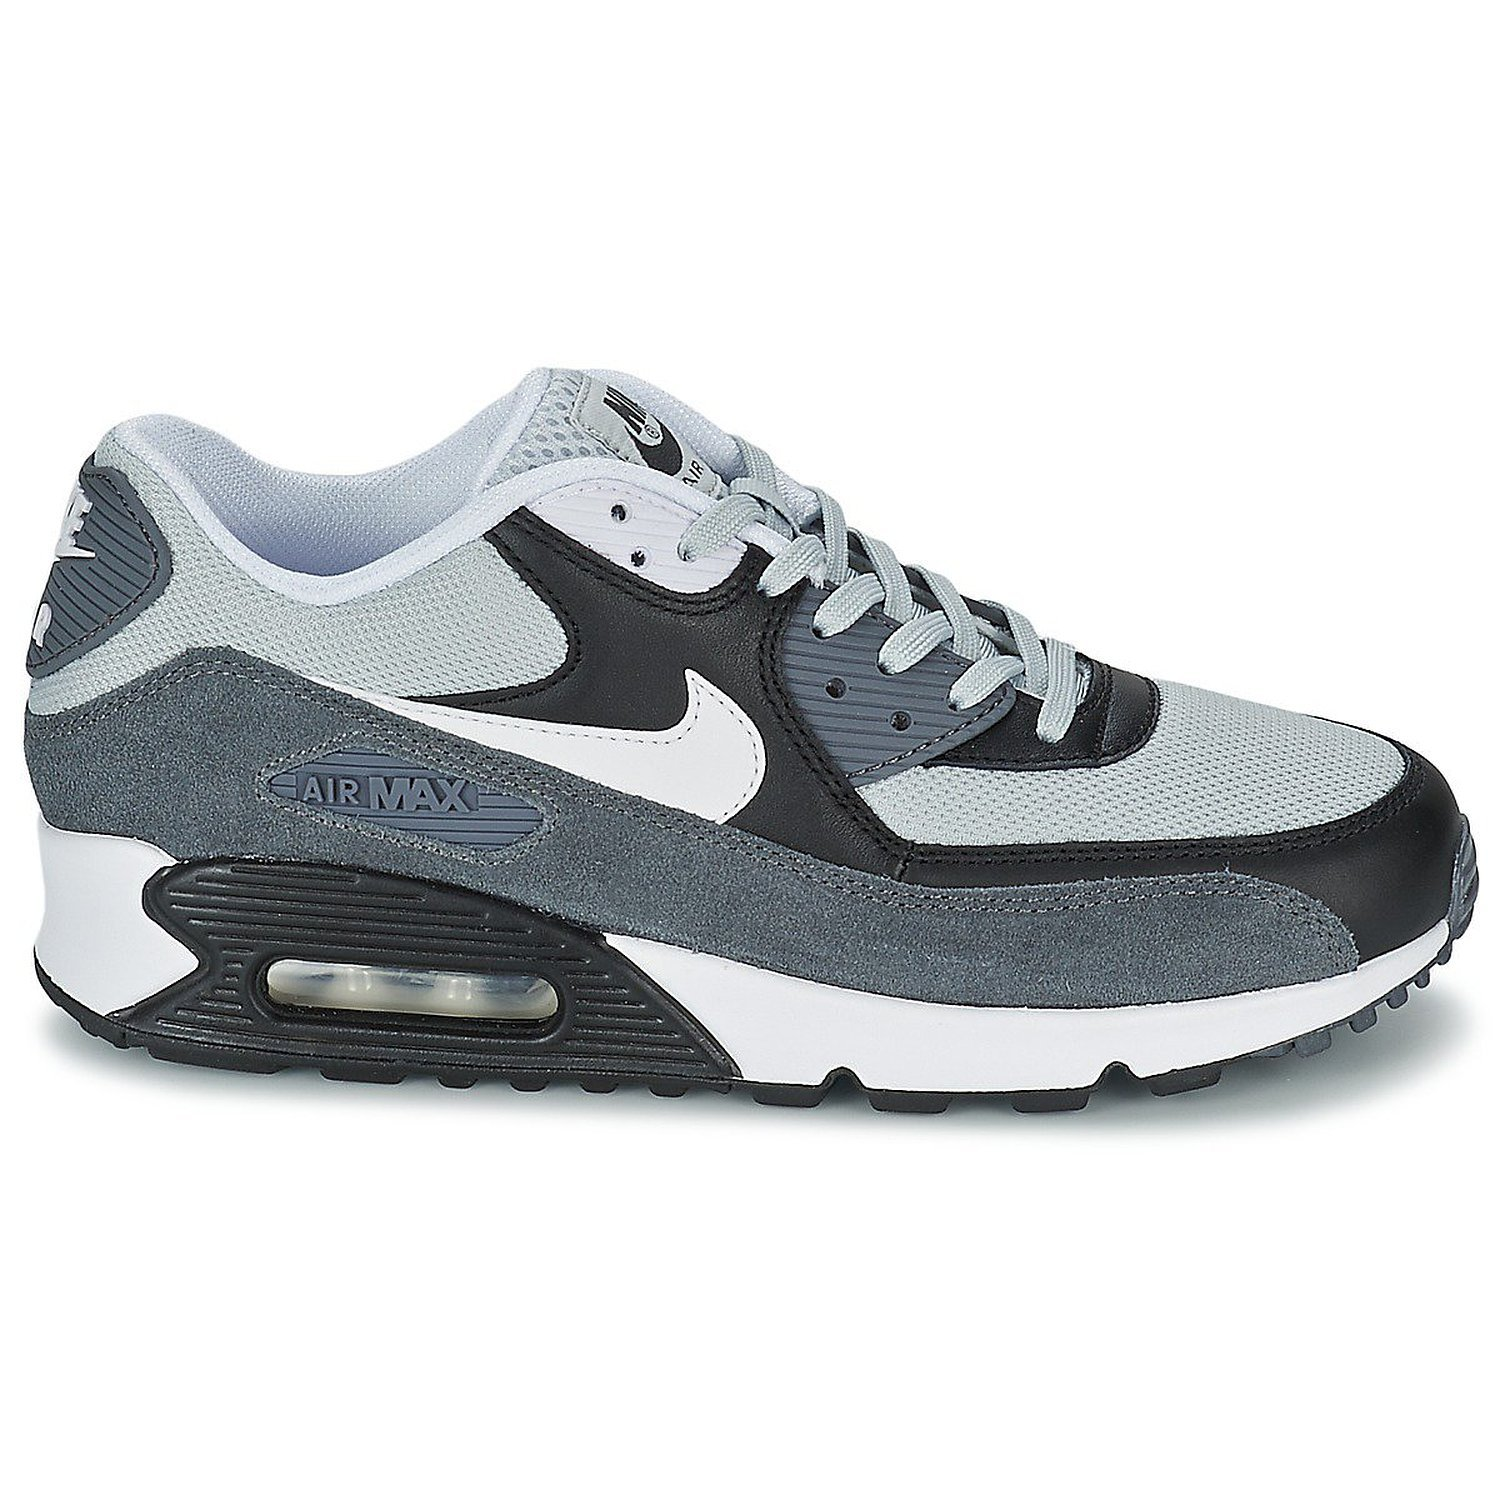 official photos 1df87 2901a Nike Air Max 90 Essential Schuhe grey mist-white-black-dark grey- 47   Amazon.co.uk  Shoes   Bags